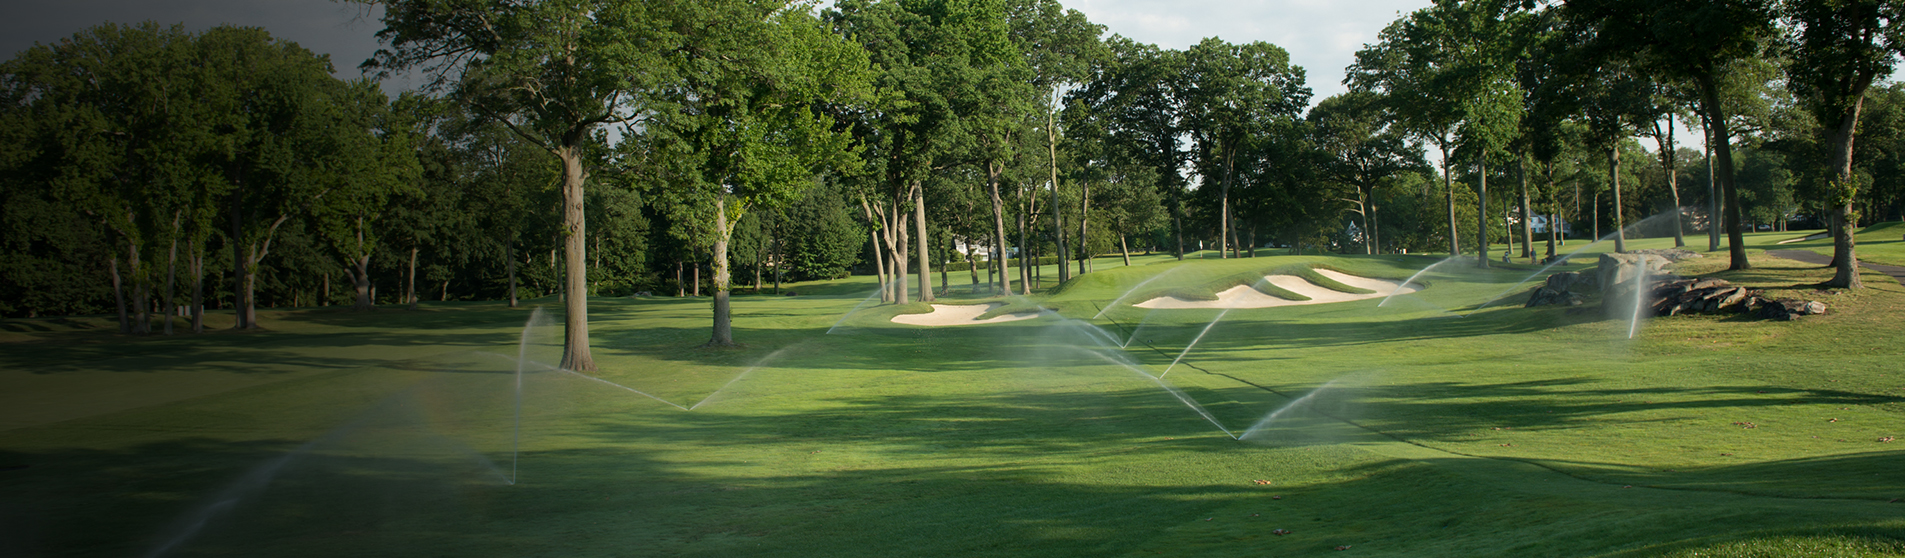 7-Step Renovation Roadmap for Golf Course Irrigation Systems